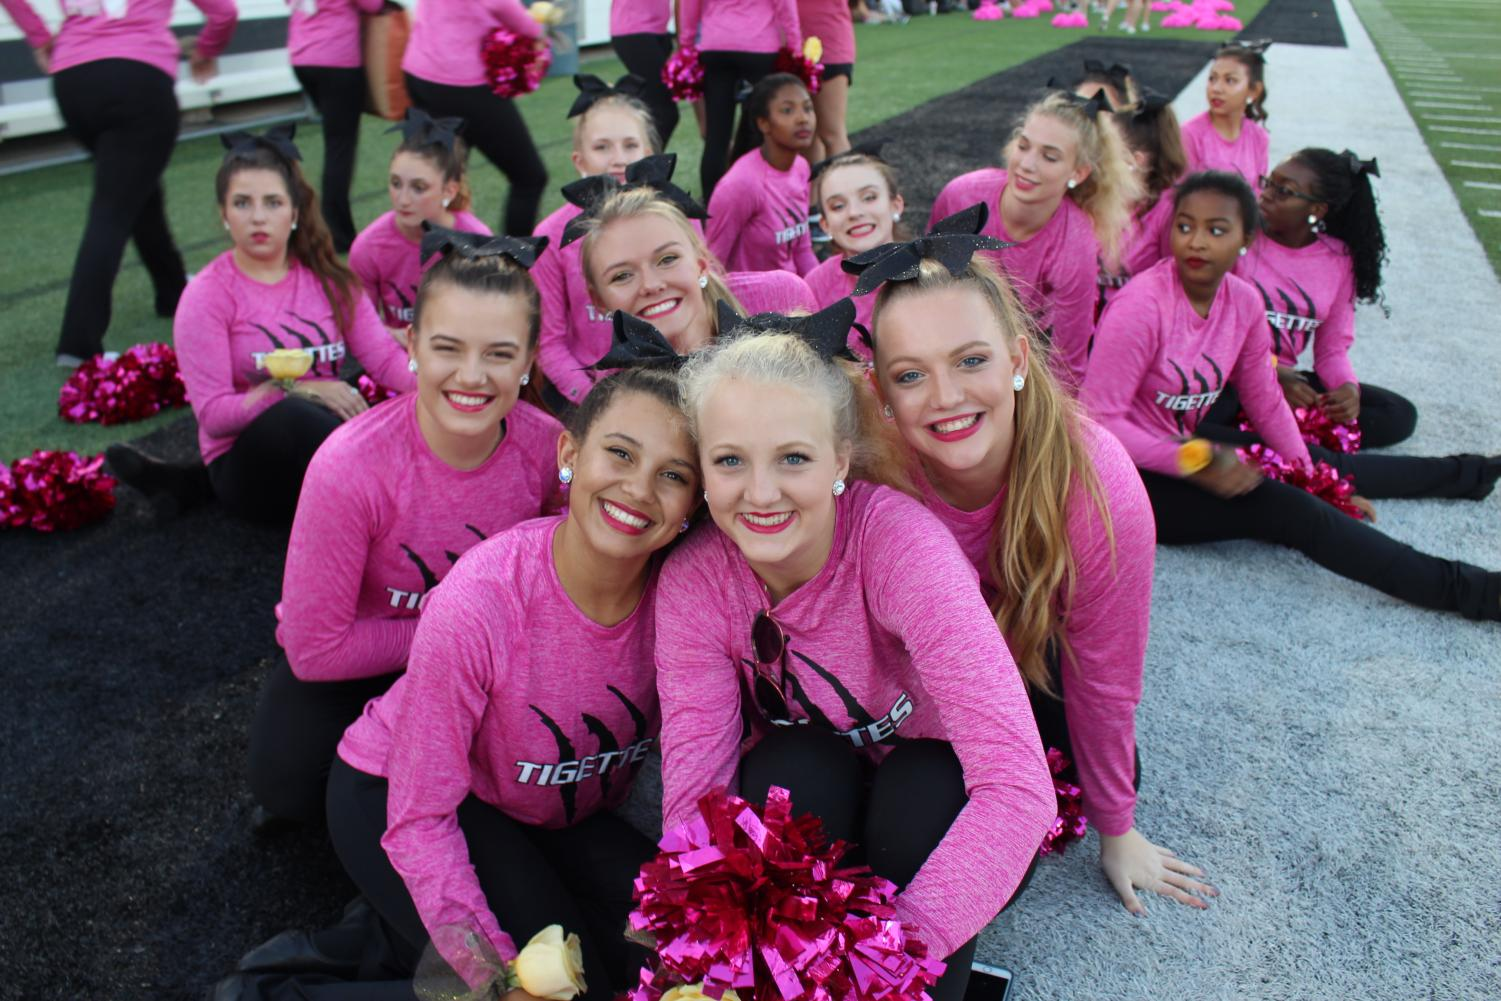 Tigettes gather on the sidelines during the half-time performances at the homecoming football game earlier in the year.